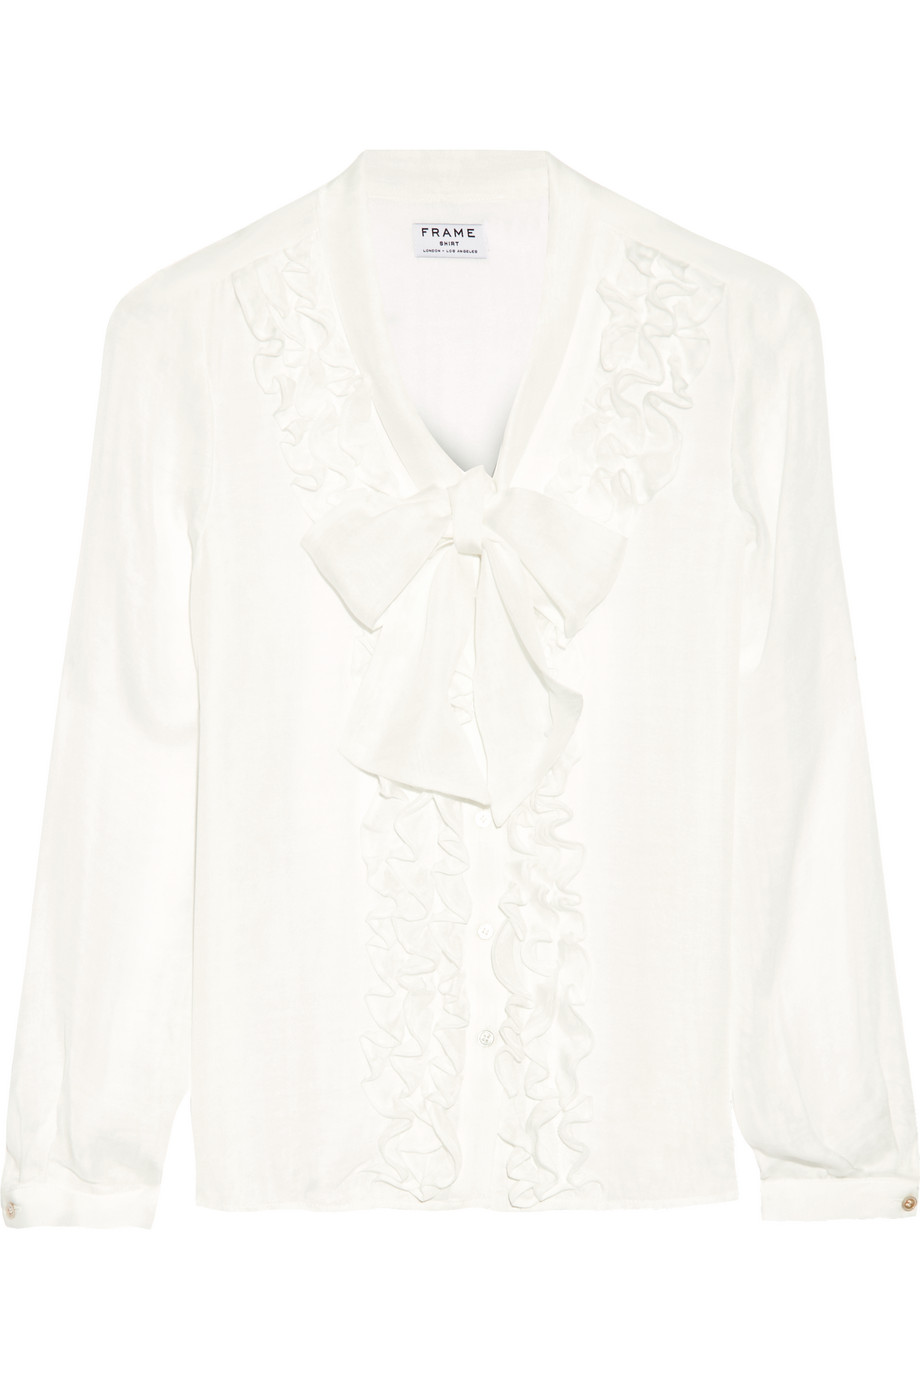 Le Ruffle Pussy-Bow Silk Shirt, Off-White, Women's